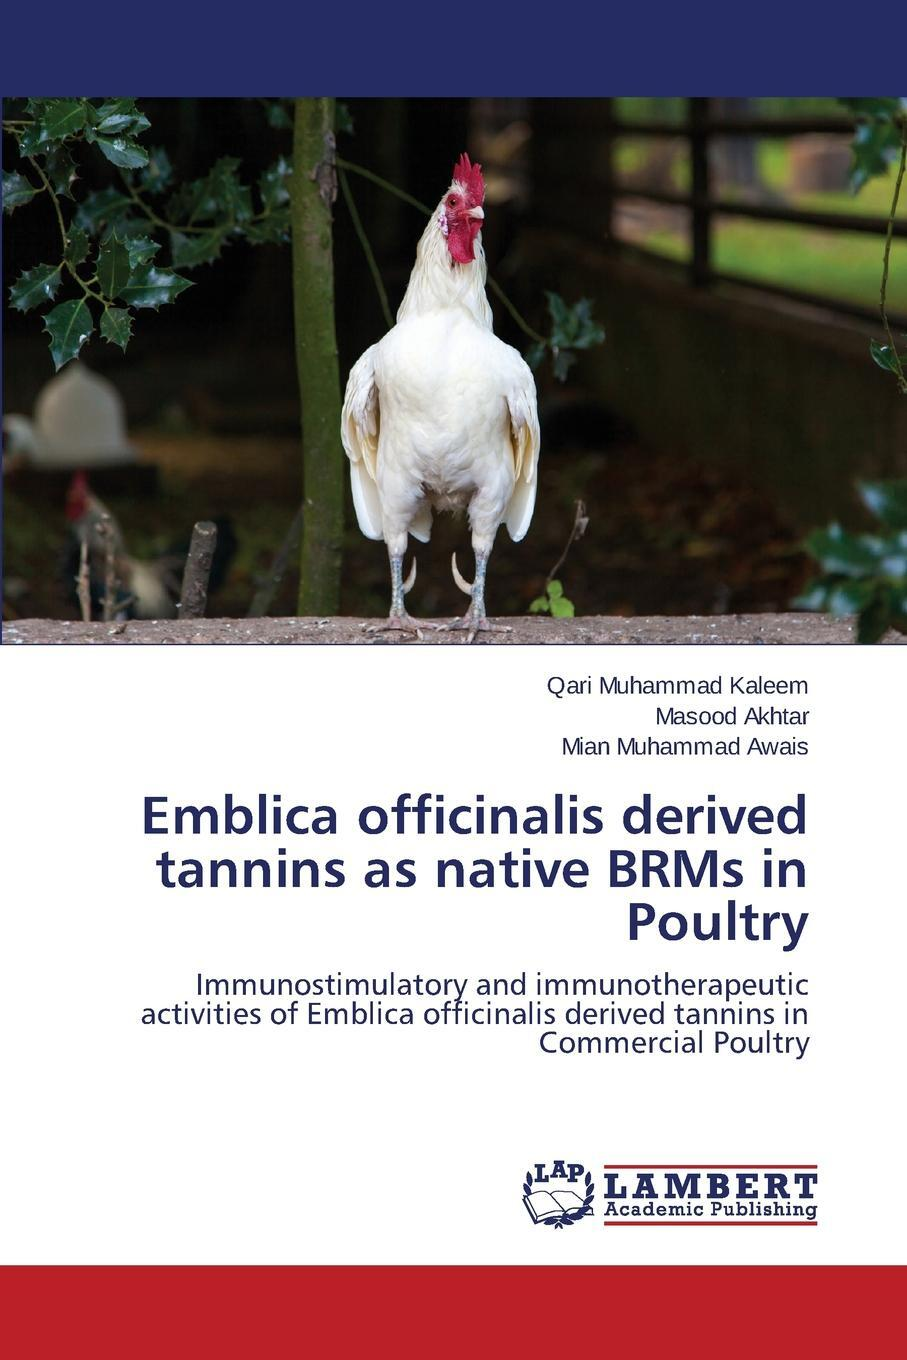 Emblica officinalis derived tannins as native BRMs in Poultry